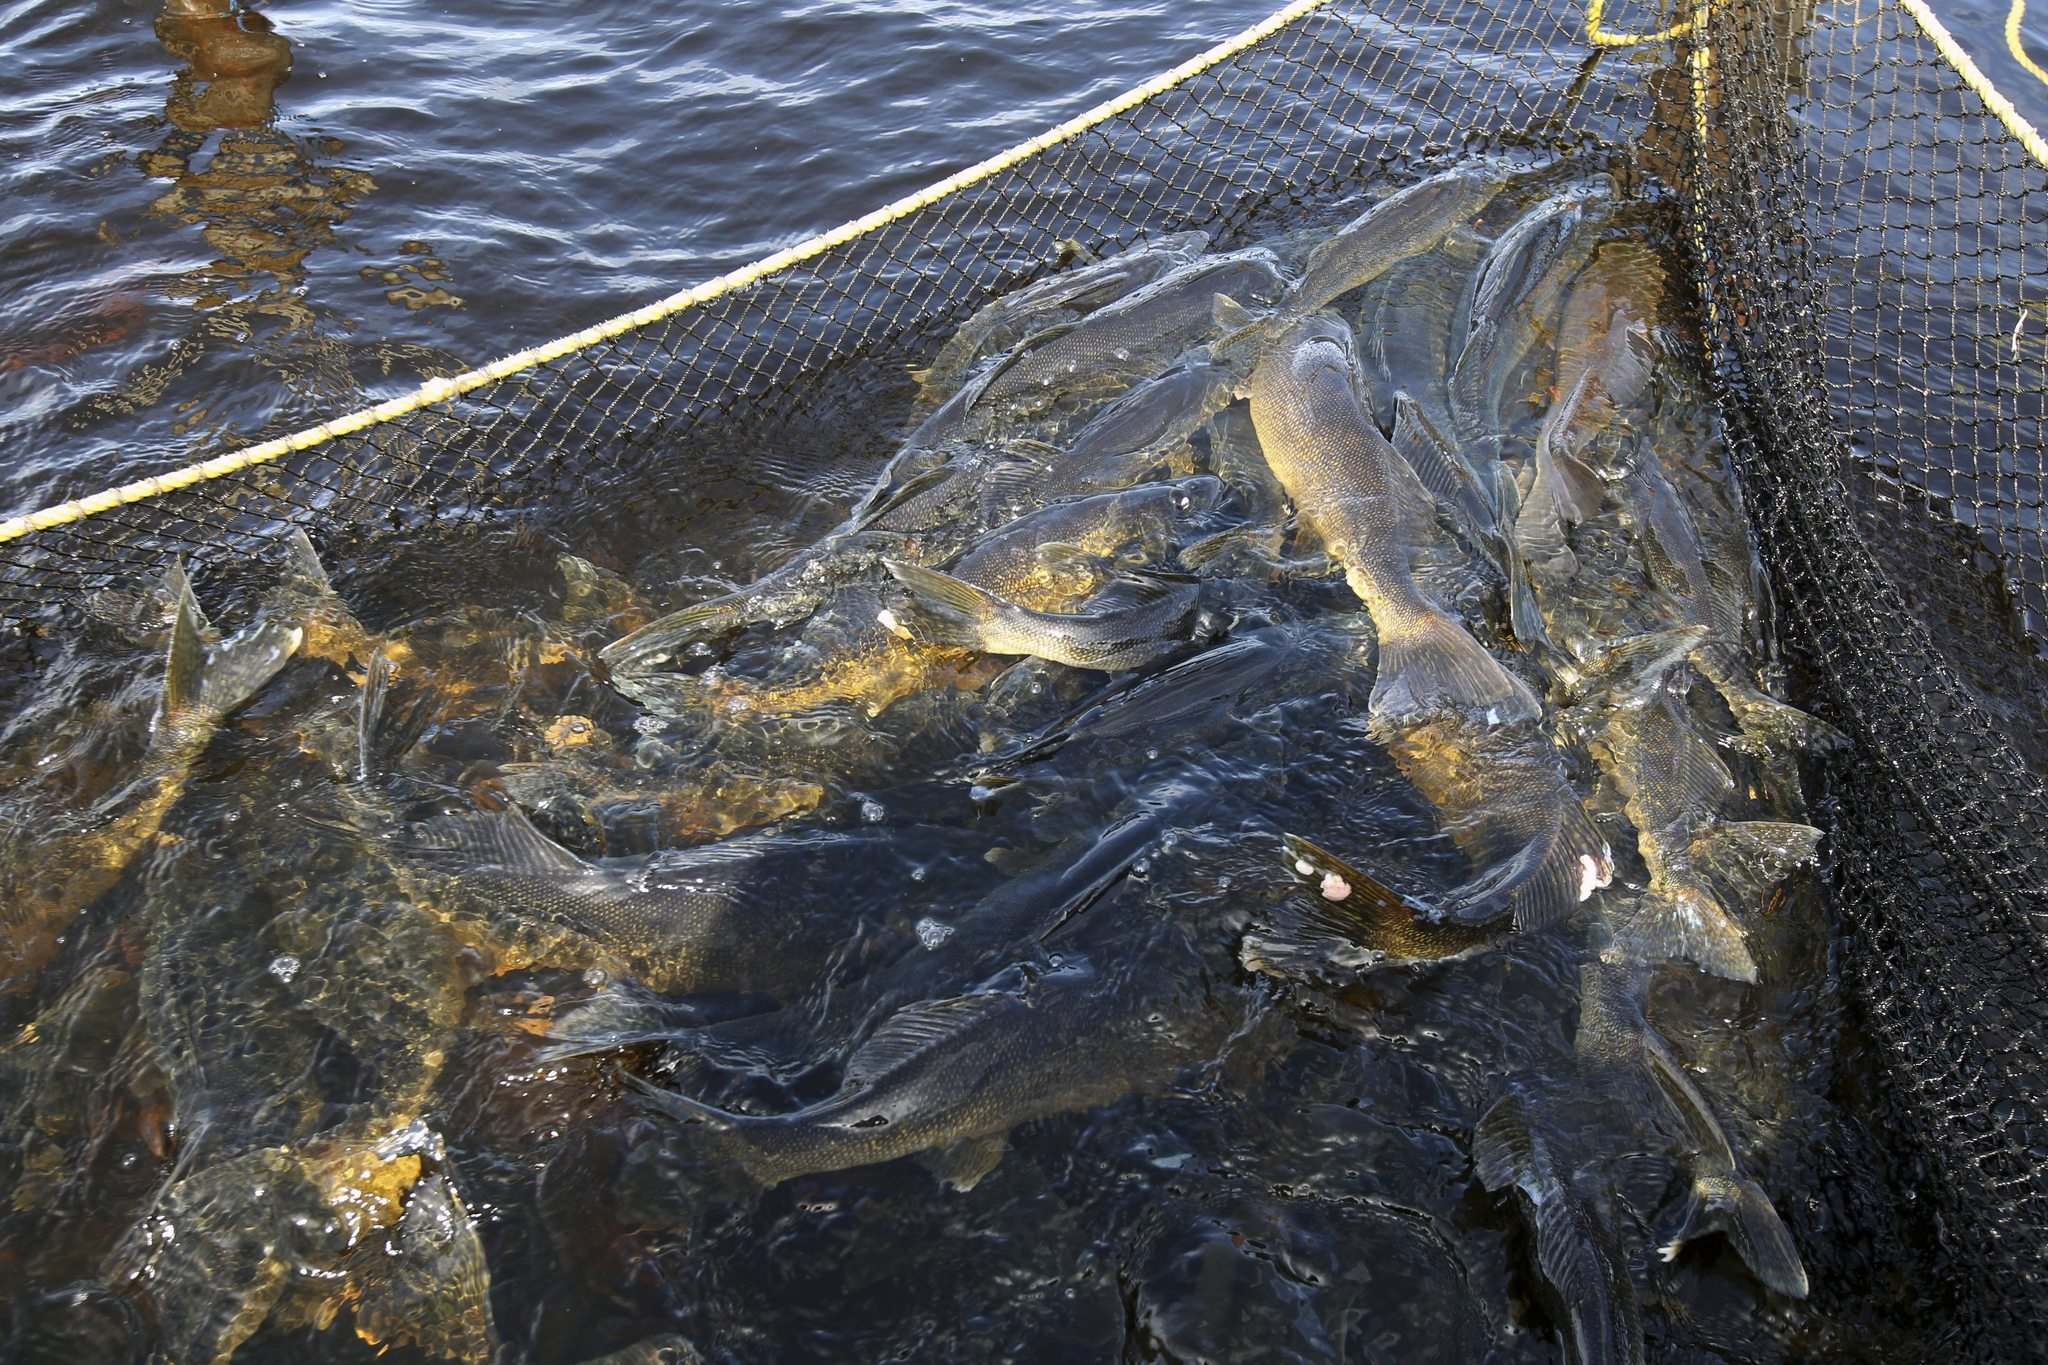 The province plans to make commercial fish harvesters use larger mesh sizes on their nets in Lake Winnipeg's south basin.